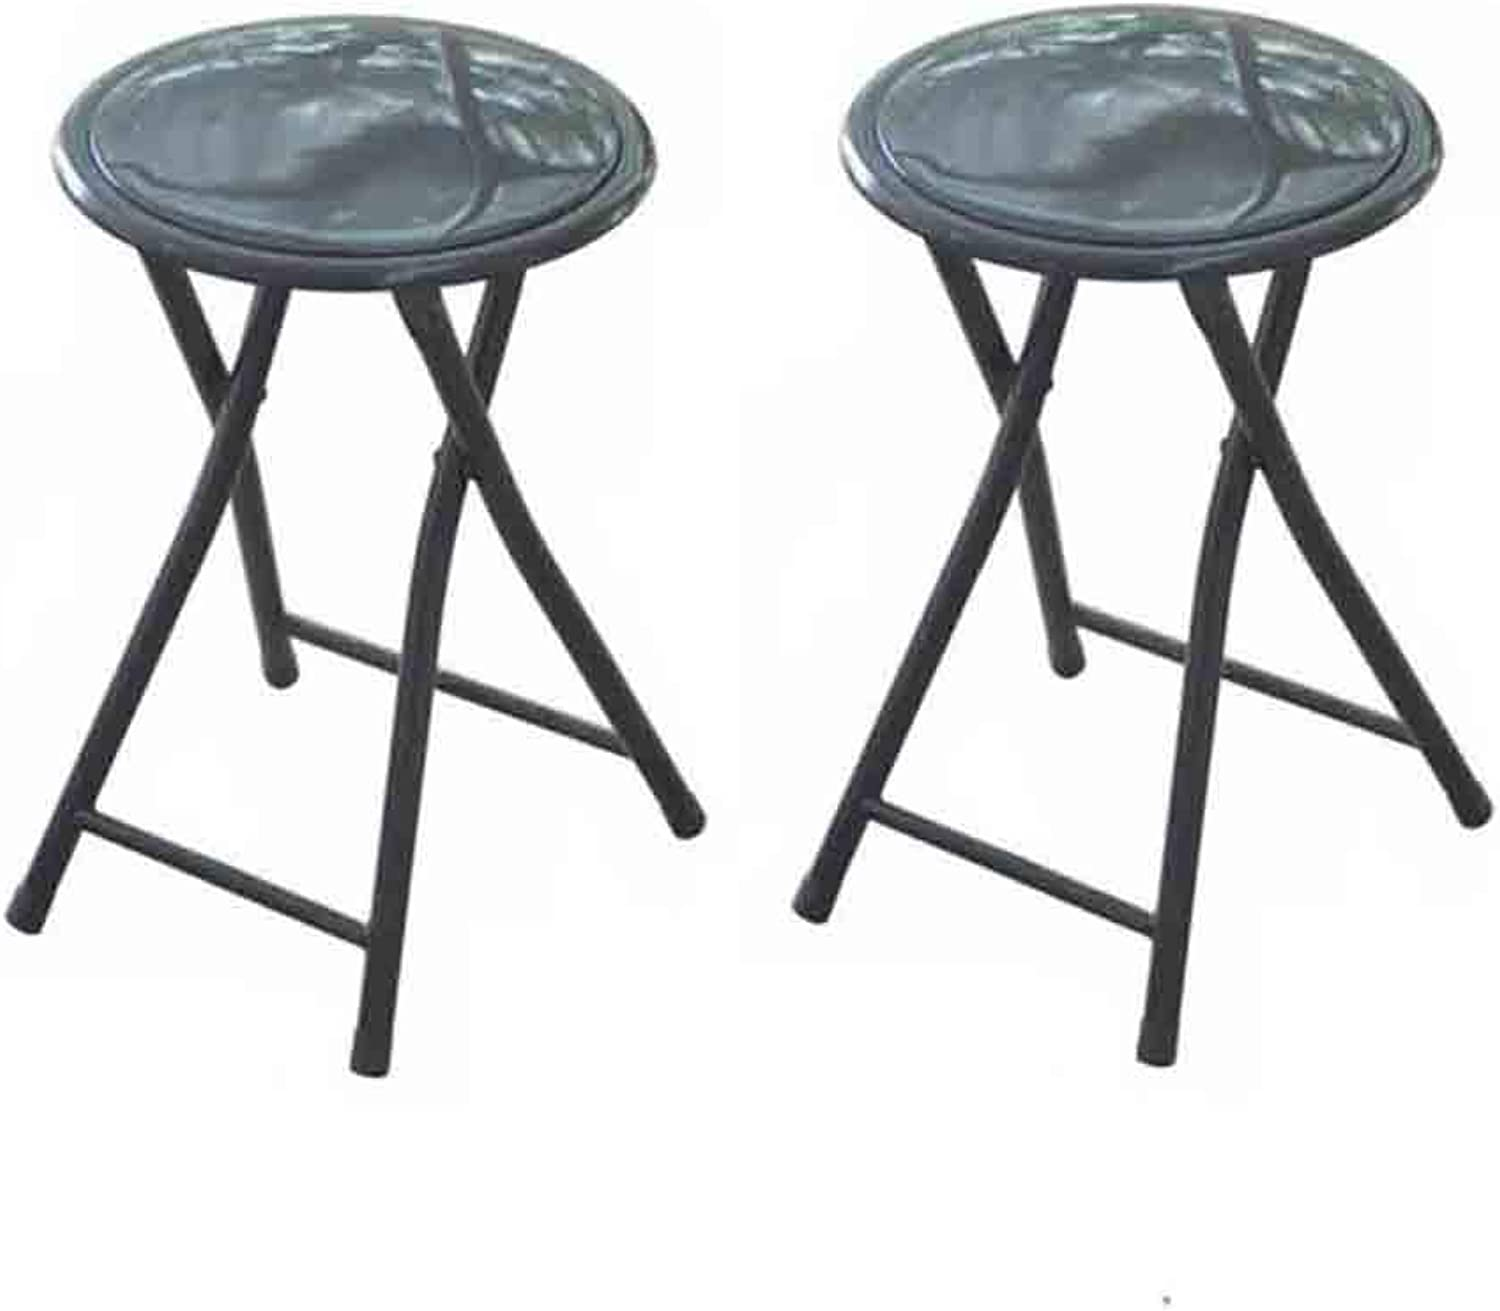 LBYMYB Round Compact Stackable Folding Stool 2 Pieces for Household Portable PU Seat Surface Chair (color   Black)